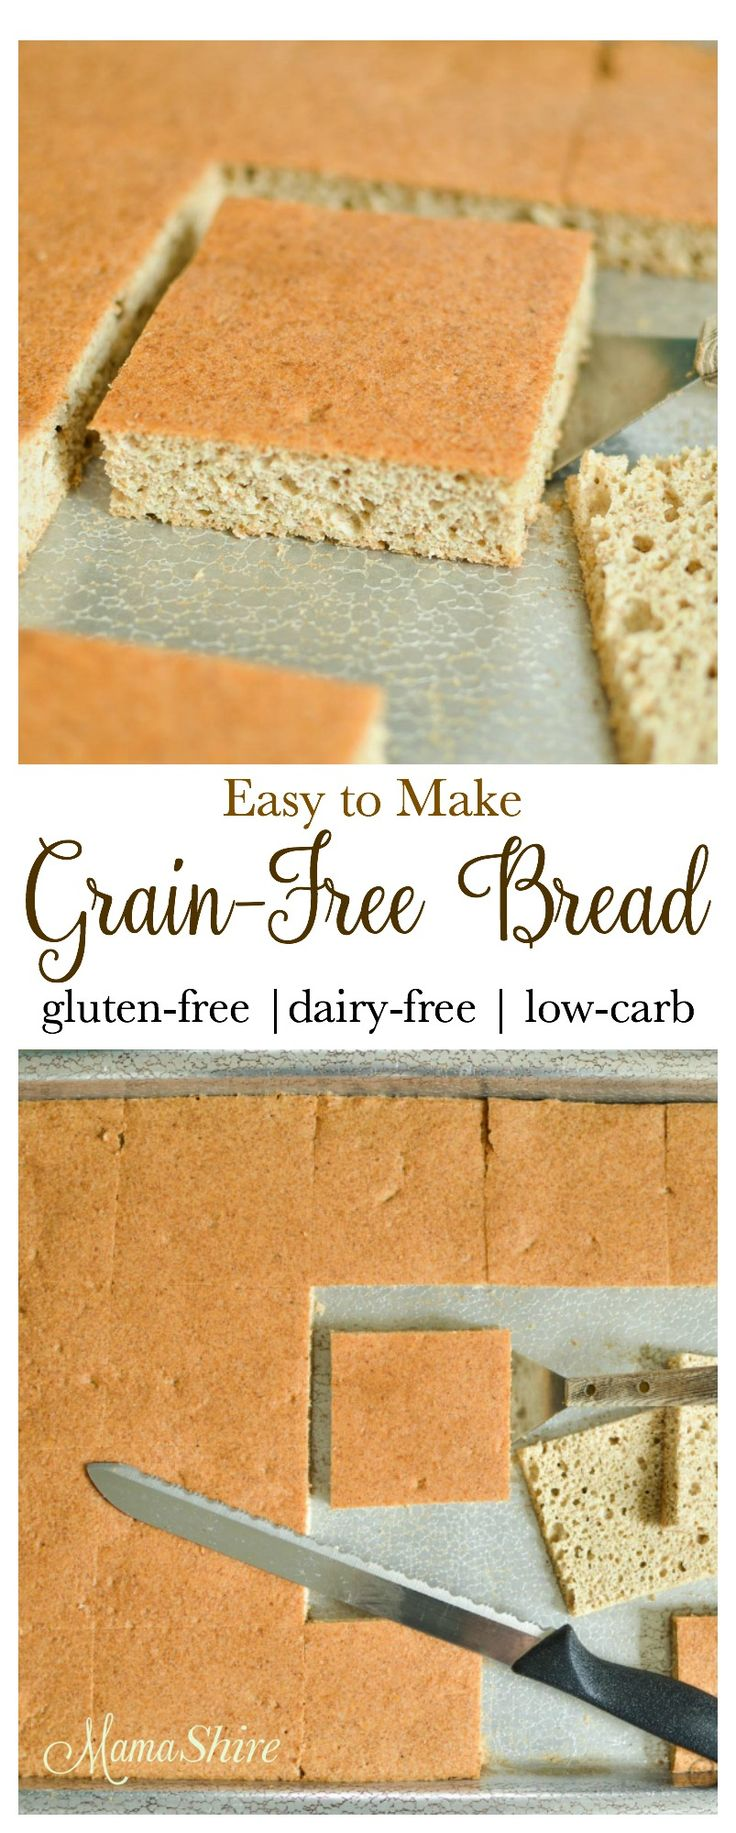 Easy to make Gluten-free Bread. A family favorite! This bread is perfect for sandwiches, toast or buns. Grain-free, Dairy-free, Trim Healthy Mama (S)